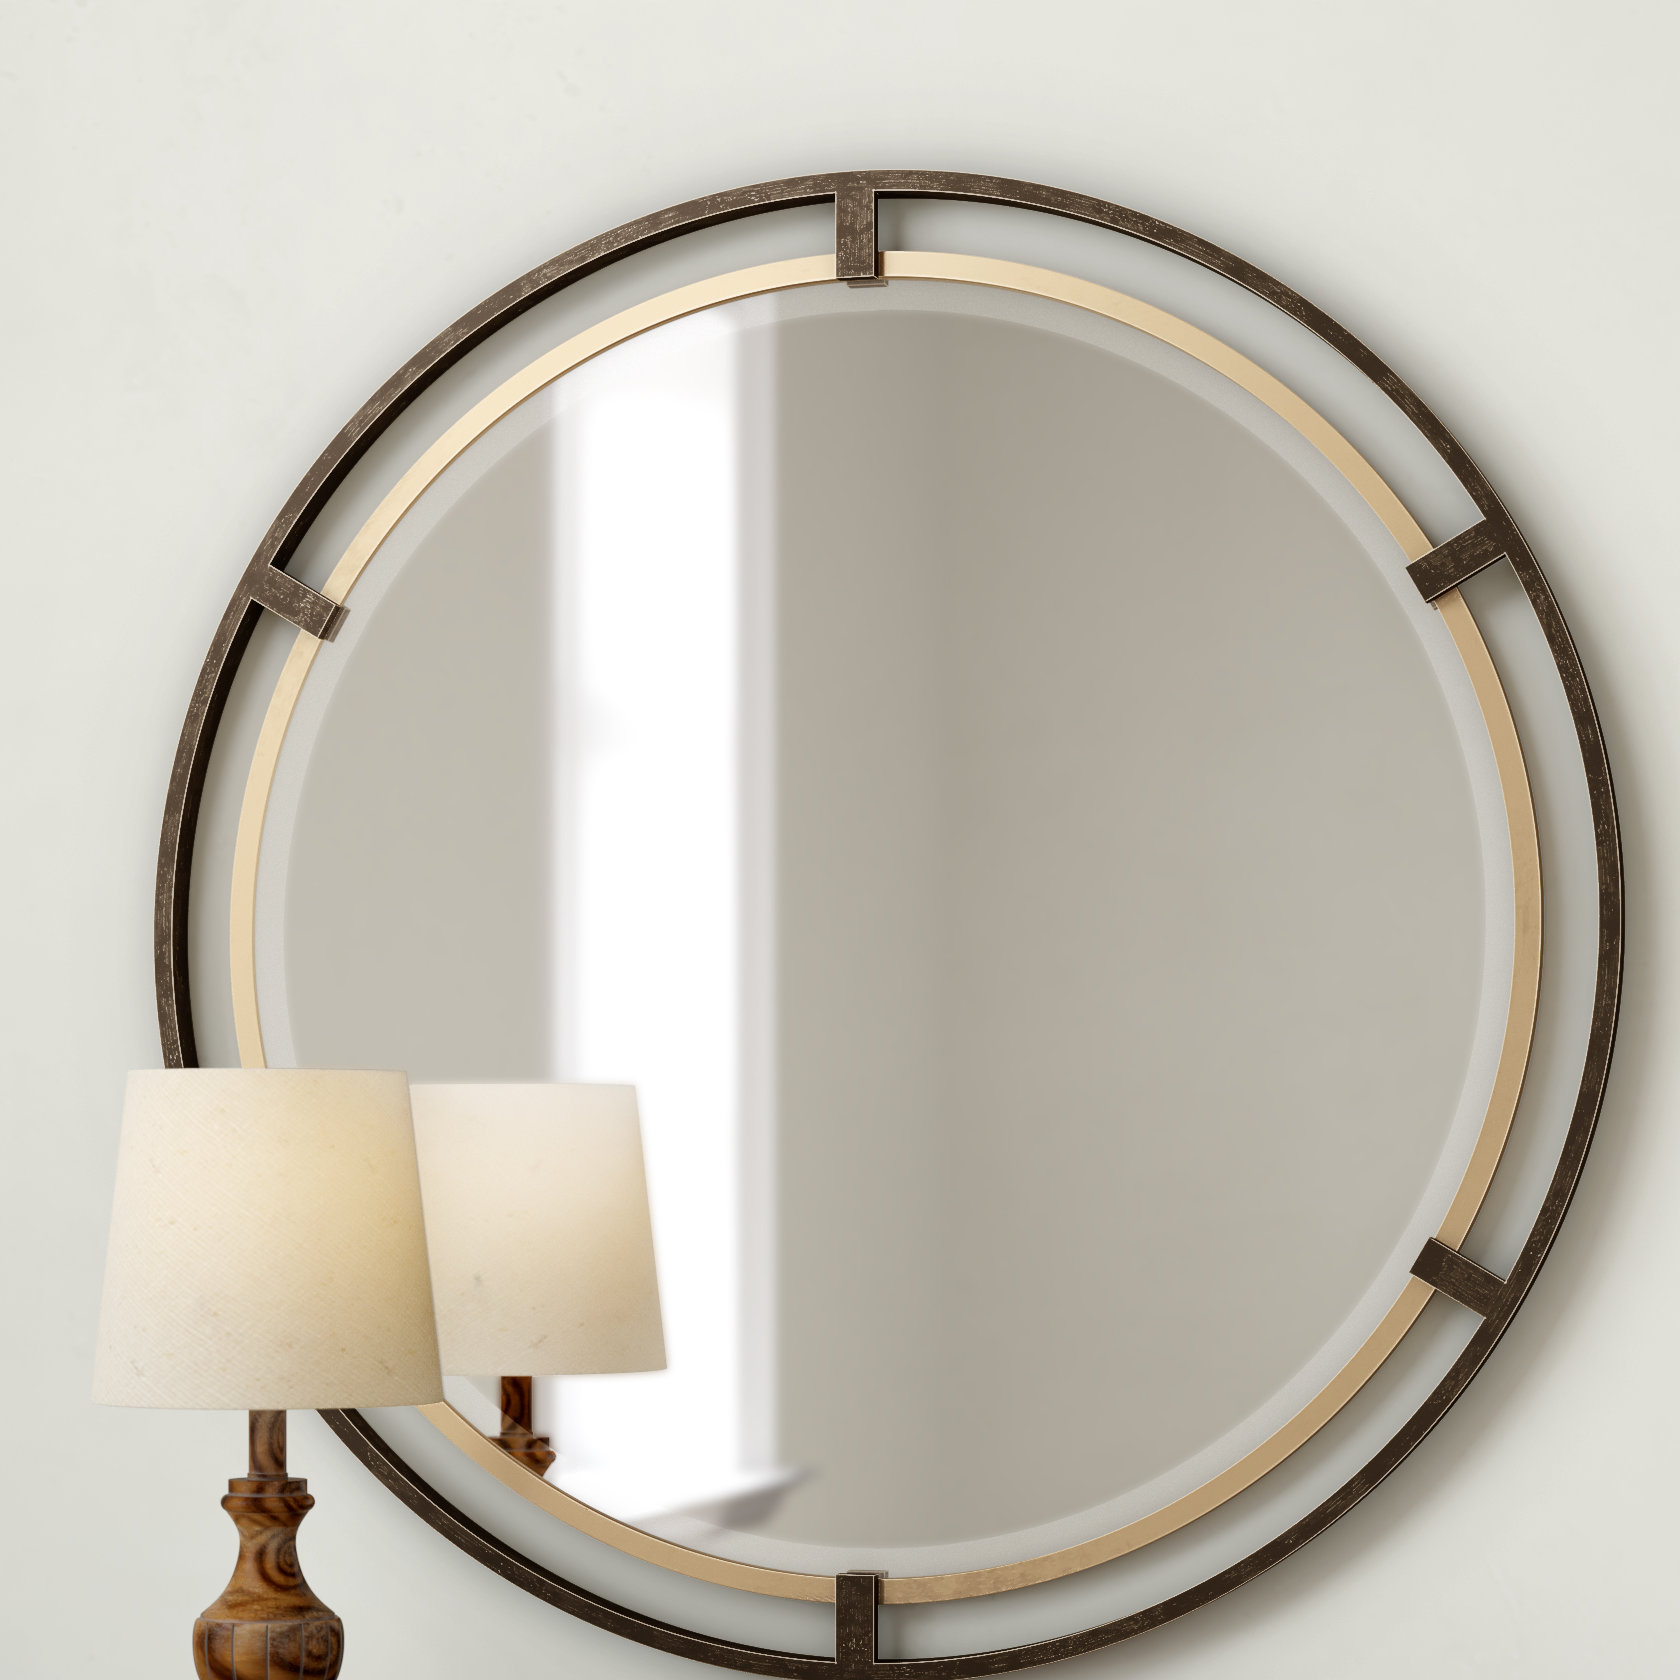 Pia Carrizo Modern & Contemporary Accent Mirror Throughout Charters Towers Accent Mirrors (Image 17 of 20)